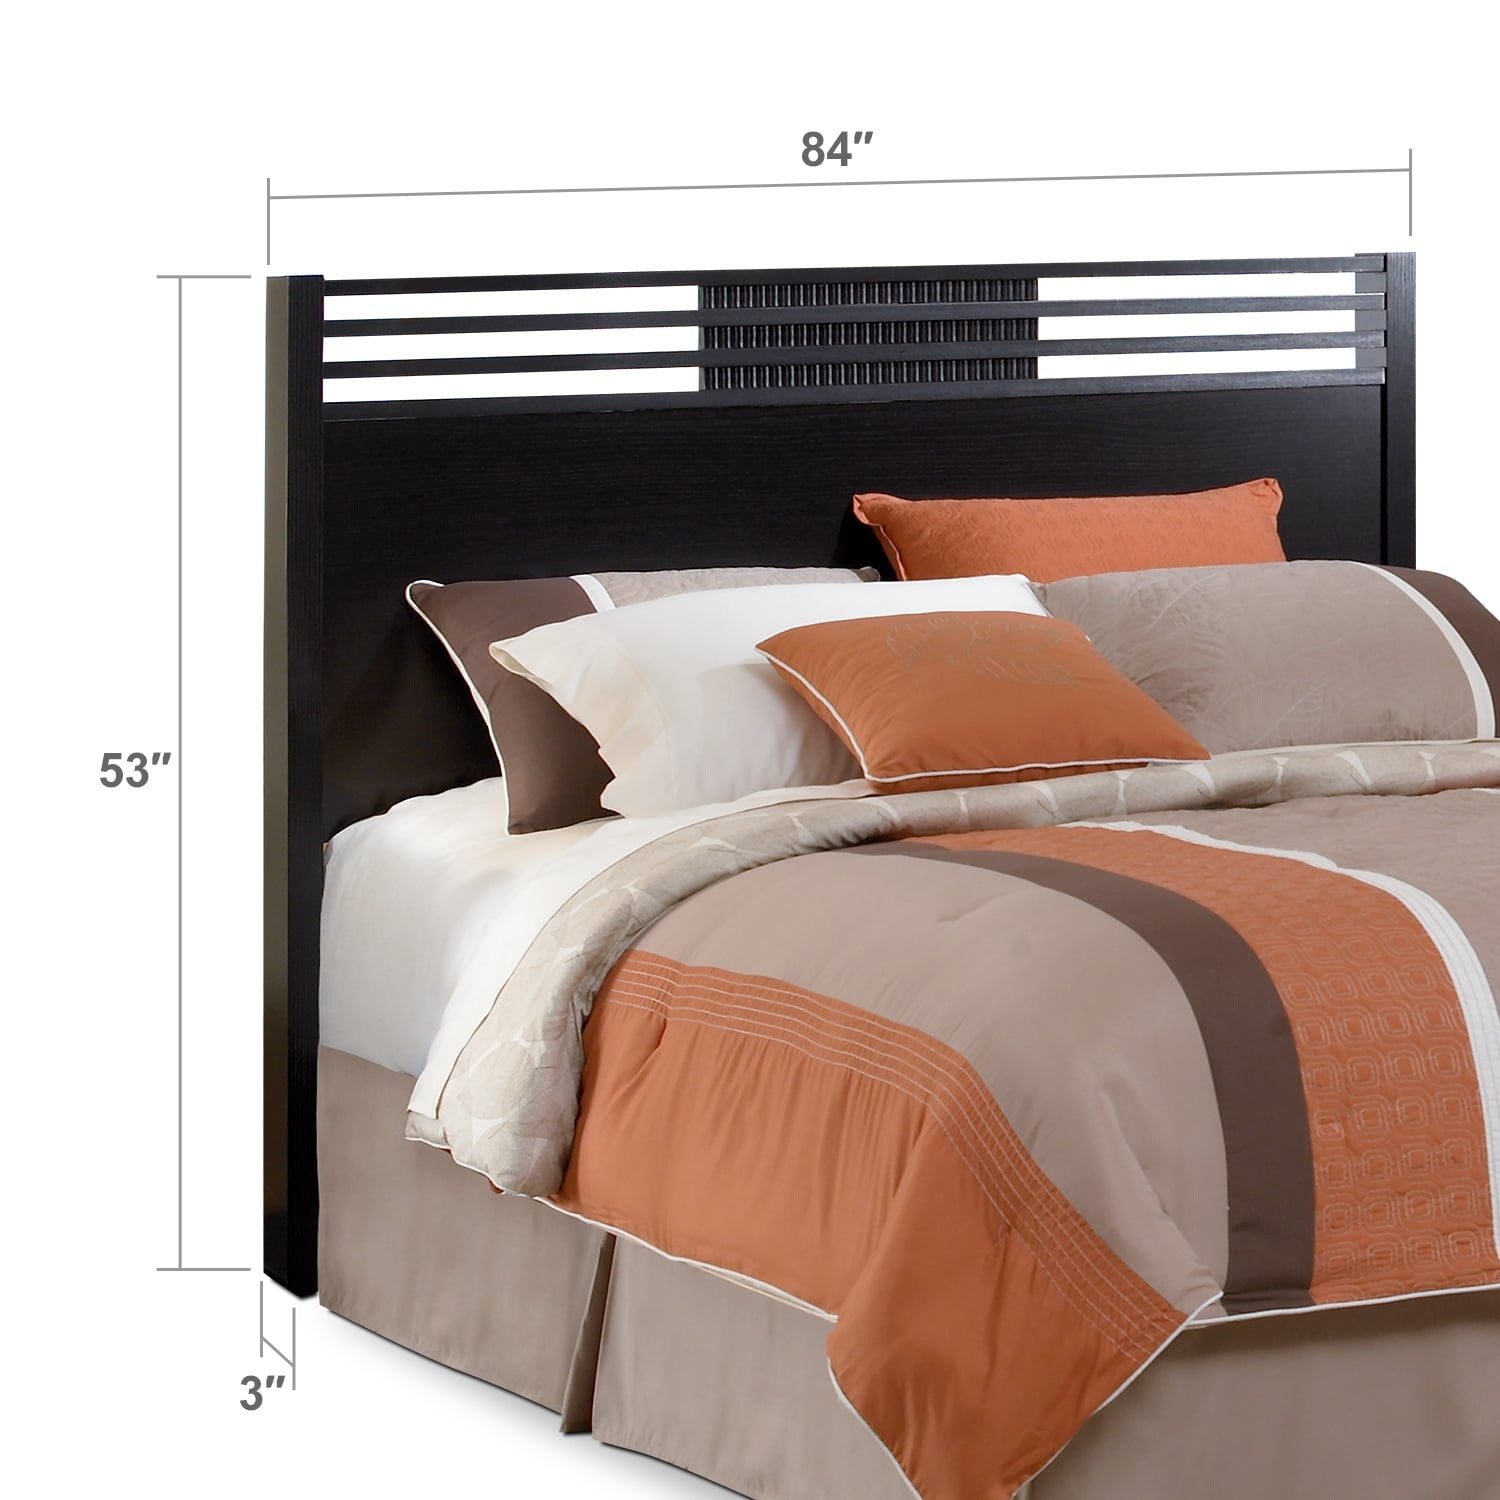 Bedroom Furniture - Bally King Headboard - Espresso